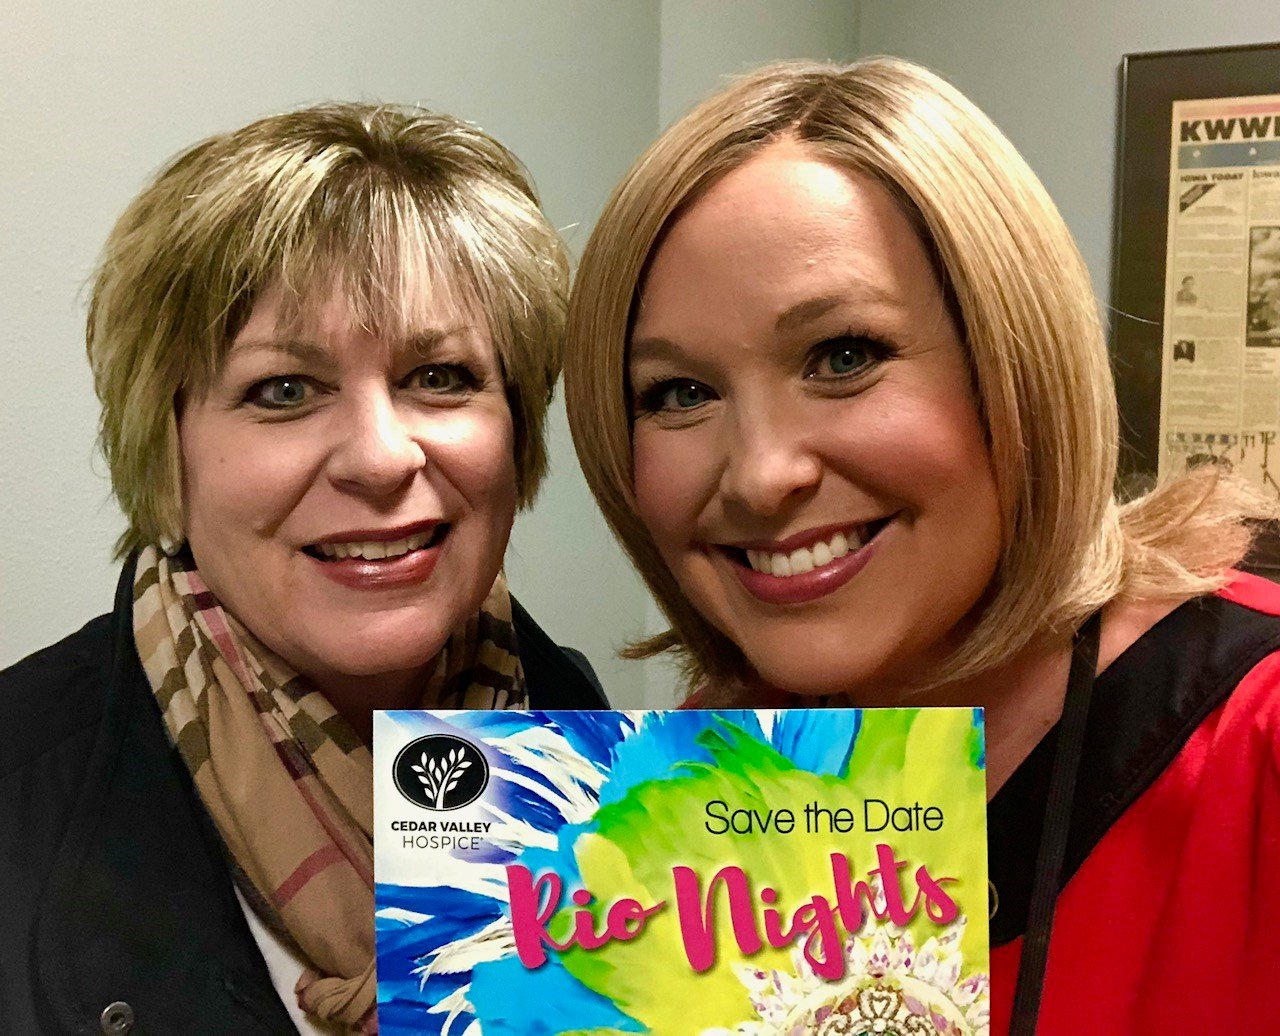 Cedar Valley Hospice's Chris Olds & KWWL's Abby Turpin during a planning meeting for Rio Nights